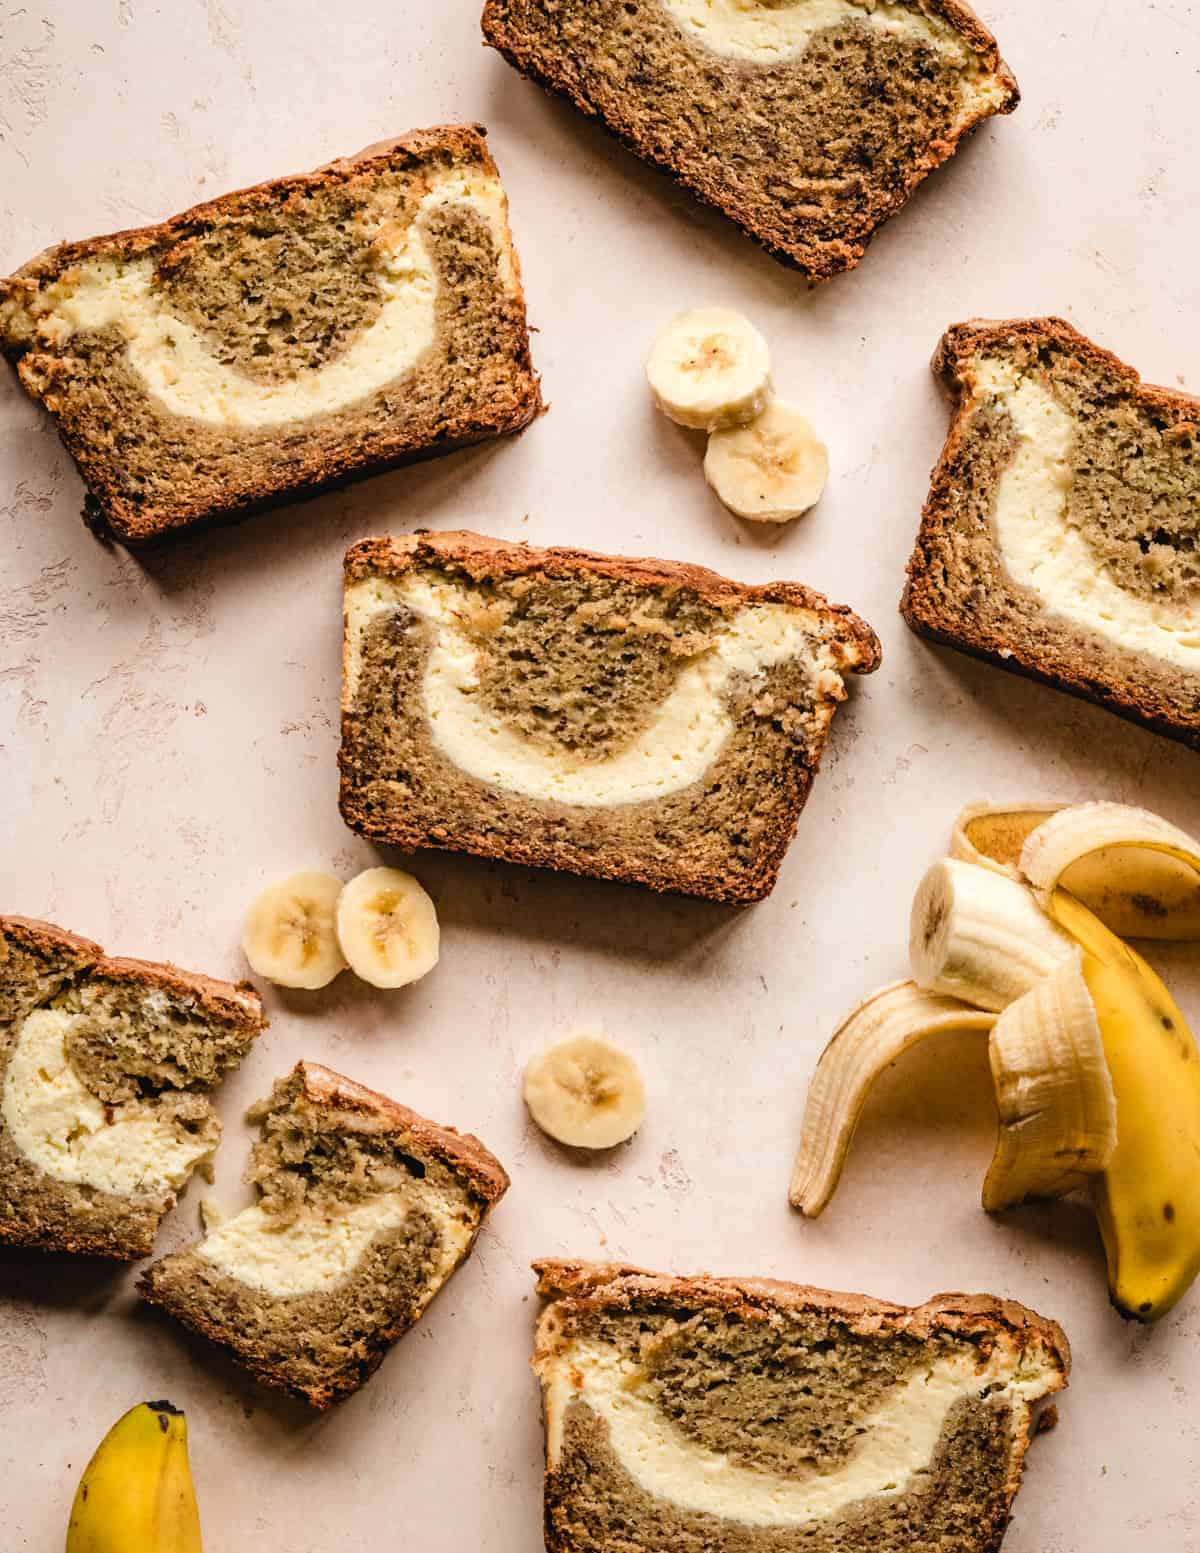 This banana bread has a delicious cream cheese swirl in the middle.